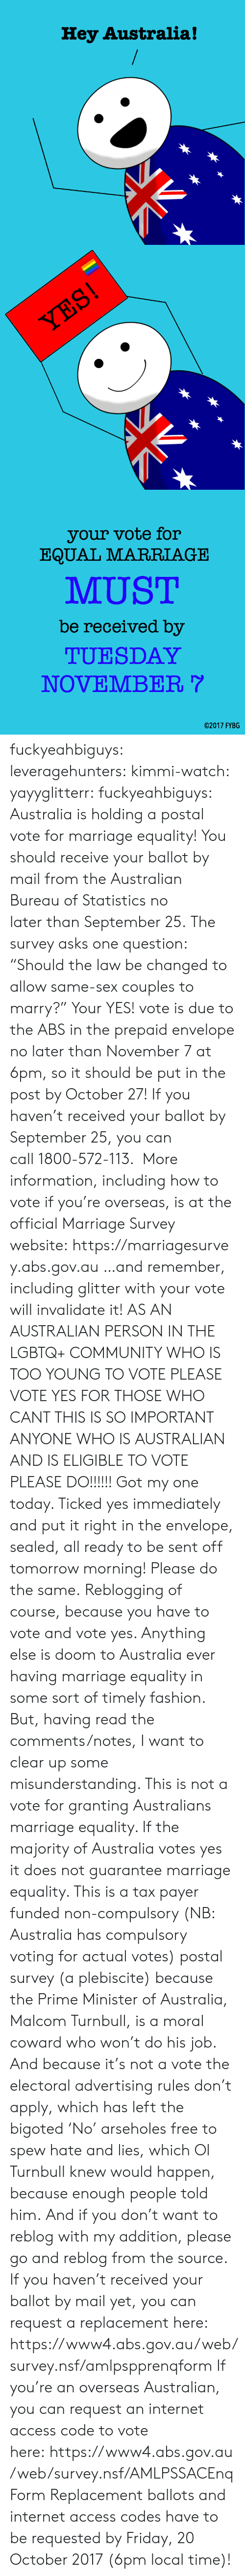 "Community, Fashion, and Friday: Hey Australia!   your vote for  EQUAL MARRIAGE  MUST  be received by  TUESDAY  NOVEMBER  02017 FYBG fuckyeahbiguys:  leveragehunters:  kimmi-watch:  yayyglitterr:  fuckyeahbiguys:  Australia is holding a postal vote for marriage equality! You should receive your ballot by mail from the Australian Bureau of Statistics no later than September 25. The survey asks one question: ""Should the law be changed to allow same-sex couples to marry?"" Your YES! vote is due to the ABS in the prepaid envelope no later than November 7 at 6pm, so it should be put in the post by October 27! If you haven't received your ballot by September 25, you can call 1800-572-113.  More information, including how to vote if you're overseas, is at the official Marriage Survey website: https://marriagesurvey.abs.gov.au …and remember, including glitter with your vote will invalidate it!  AS AN AUSTRALIAN PERSON IN THE LGBTQ+ COMMUNITY WHO IS TOO YOUNG TO VOTE PLEASE VOTE YES FOR THOSE WHO CANT THIS IS SO IMPORTANT ANYONE WHO IS AUSTRALIAN AND IS ELIGIBLE TO VOTE PLEASE DO!!!!!!  Got my one today. Ticked yes immediately and put it right in the envelope, sealed, all ready to be sent off tomorrow morning! Please do the same.  Reblogging of course, because you have to vote and vote yes. Anything else is doom to Australia ever having marriage equality in some sort of timely fashion. But, having read the comments/notes, I want to clear up some misunderstanding. This is not a vote for granting Australians marriage equality. If the majority of Australia votes yes it does not guarantee marriage equality. This is a tax payer funded non-compulsory (NB: Australia has compulsory voting for actual votes) postal survey (a plebiscite) because the Prime Minister of Australia, Malcom Turnbull, is a moral coward who won't do his job. And because it's not a vote the electoral advertising rules don't apply, which has left the bigoted 'No' arseholes free to spew hate and lies, which Ol Turnbull knew would happen, because enough people told him. And if you don't want to reblog with my addition, please go and reblog from the source.  If you haven't received your ballot by mail yet, you can request a replacement here: https://www4.abs.gov.au/web/survey.nsf/amlpspprenqform If you're an overseas Australian, you can request an internet access code to vote here: https://www4.abs.gov.au/web/survey.nsf/AMLPSSACEnqForm Replacement ballots and internet access codes have to be requested by Friday, 20 October 2017 (6pm local time)!"